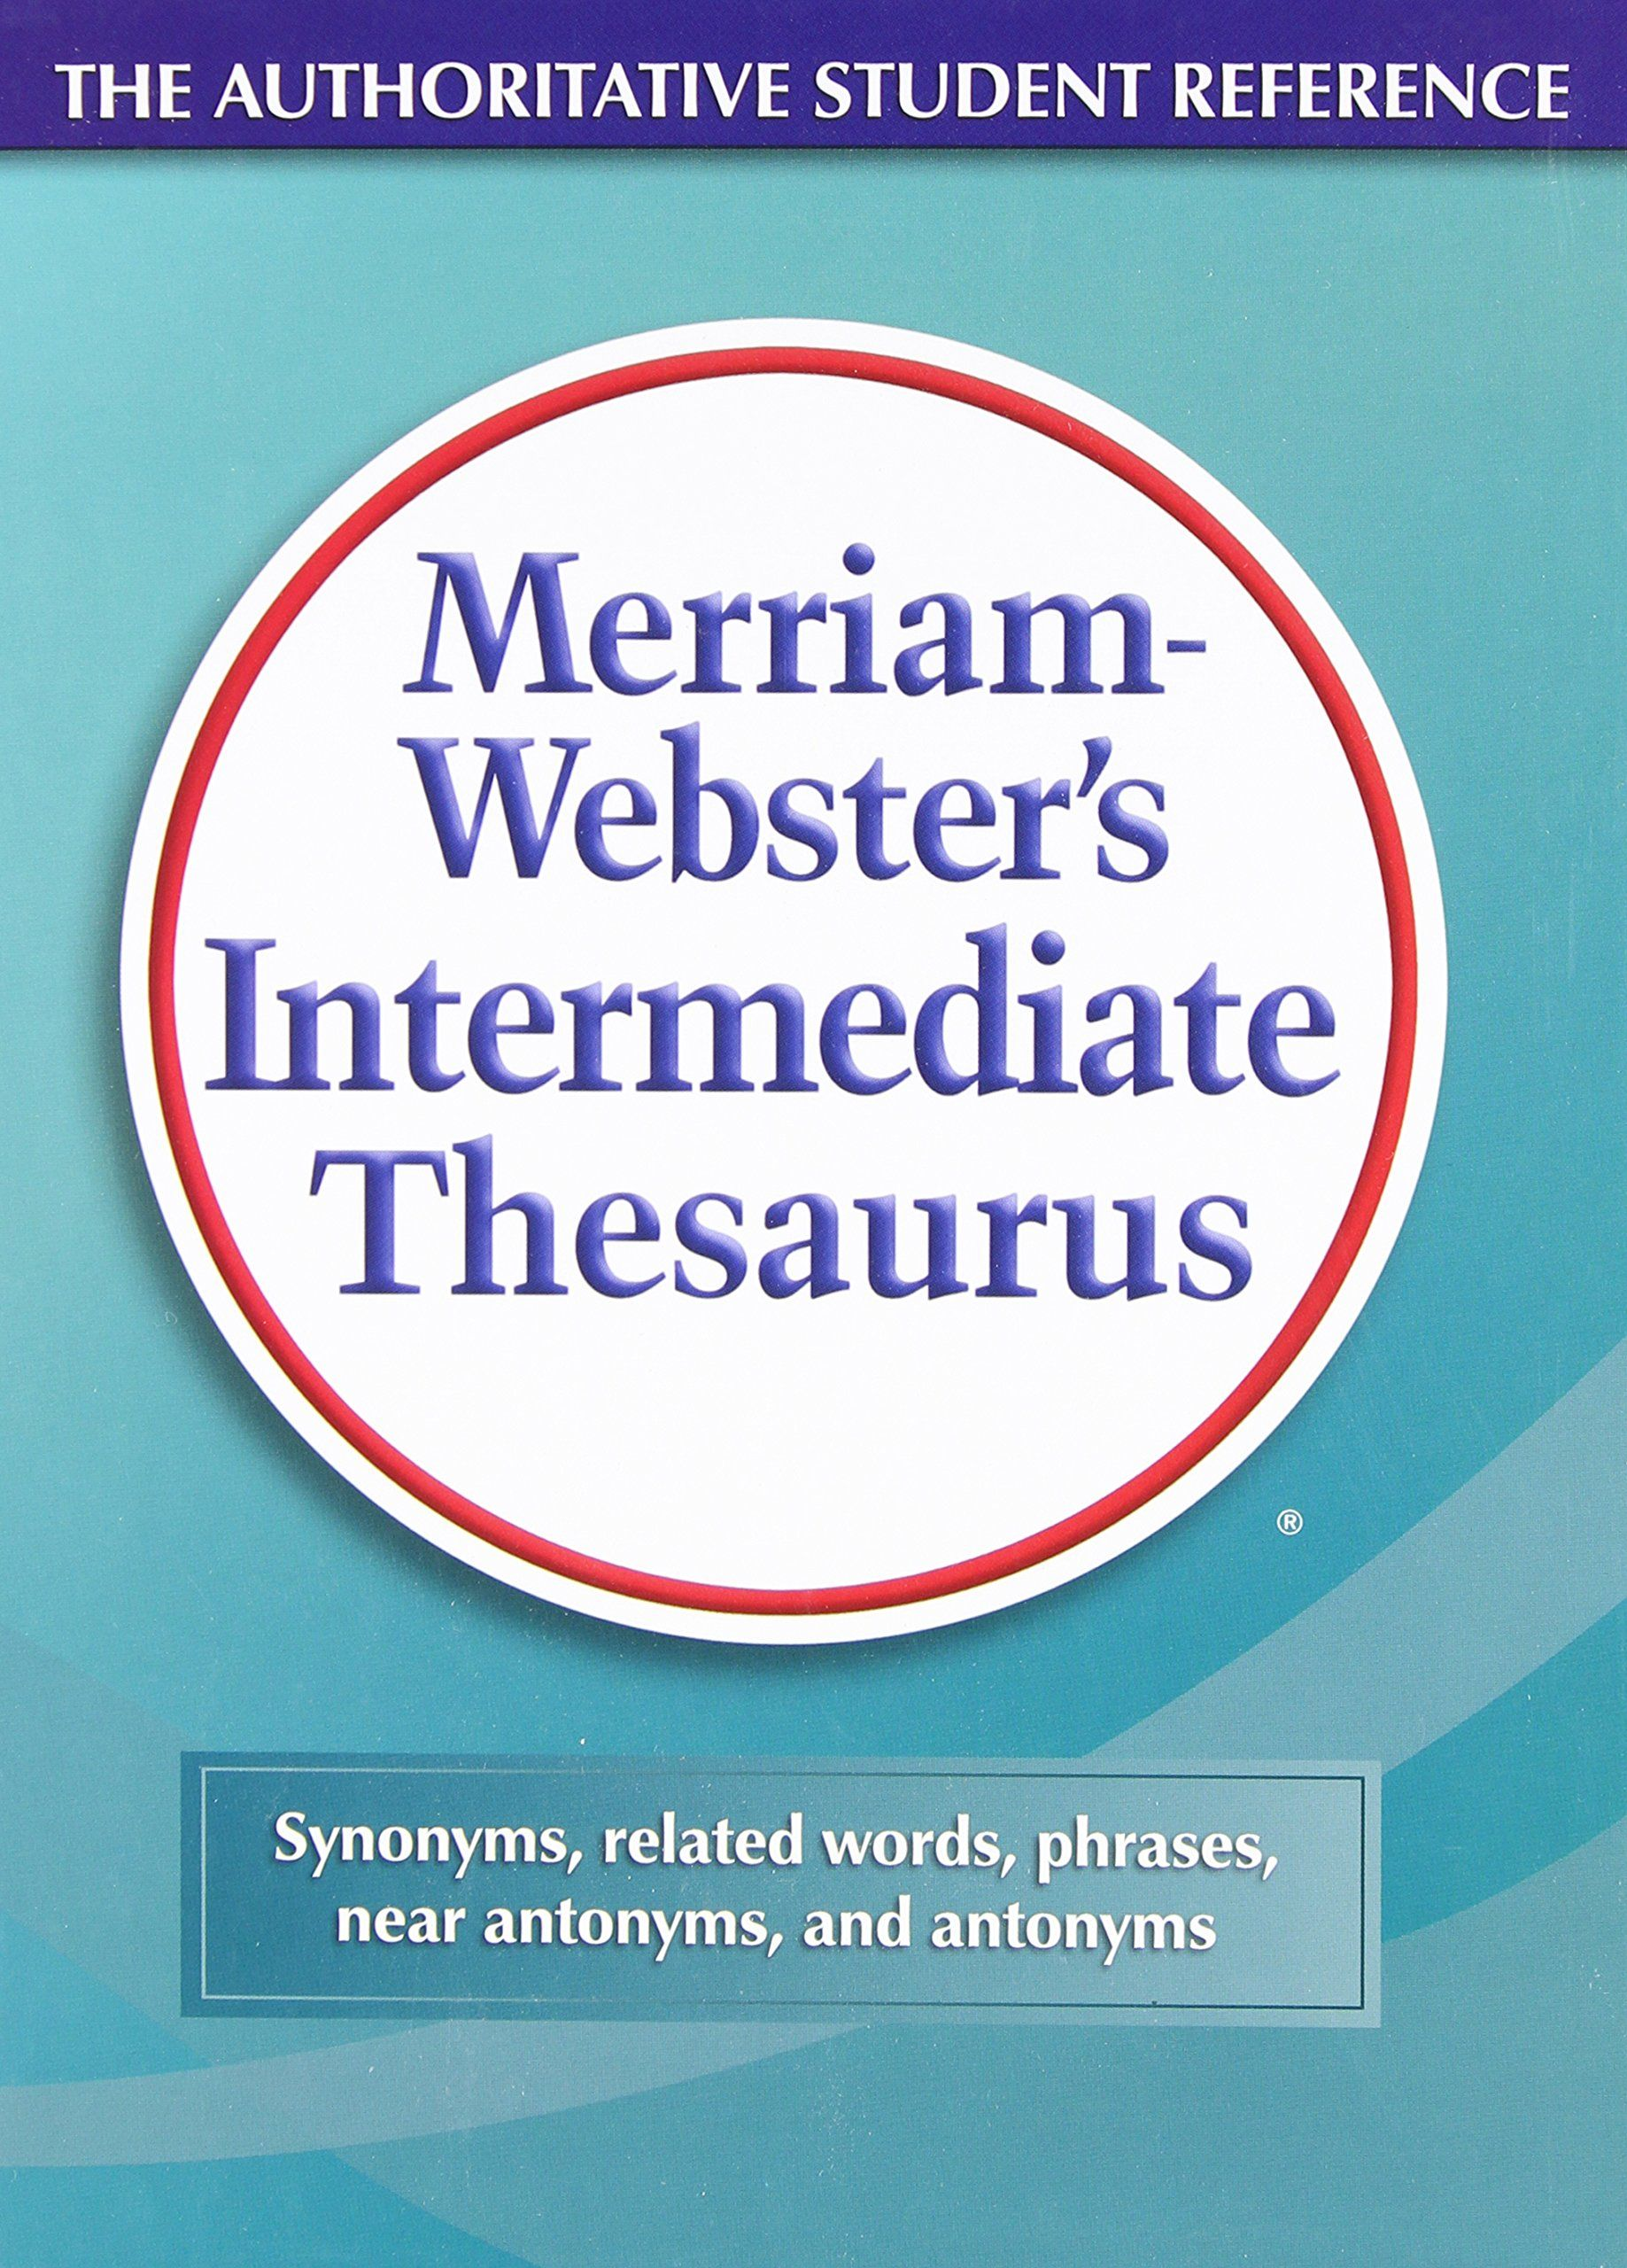 Merriam-Webster's Intermediate Thesaurus: The Authoritative Student  Reference